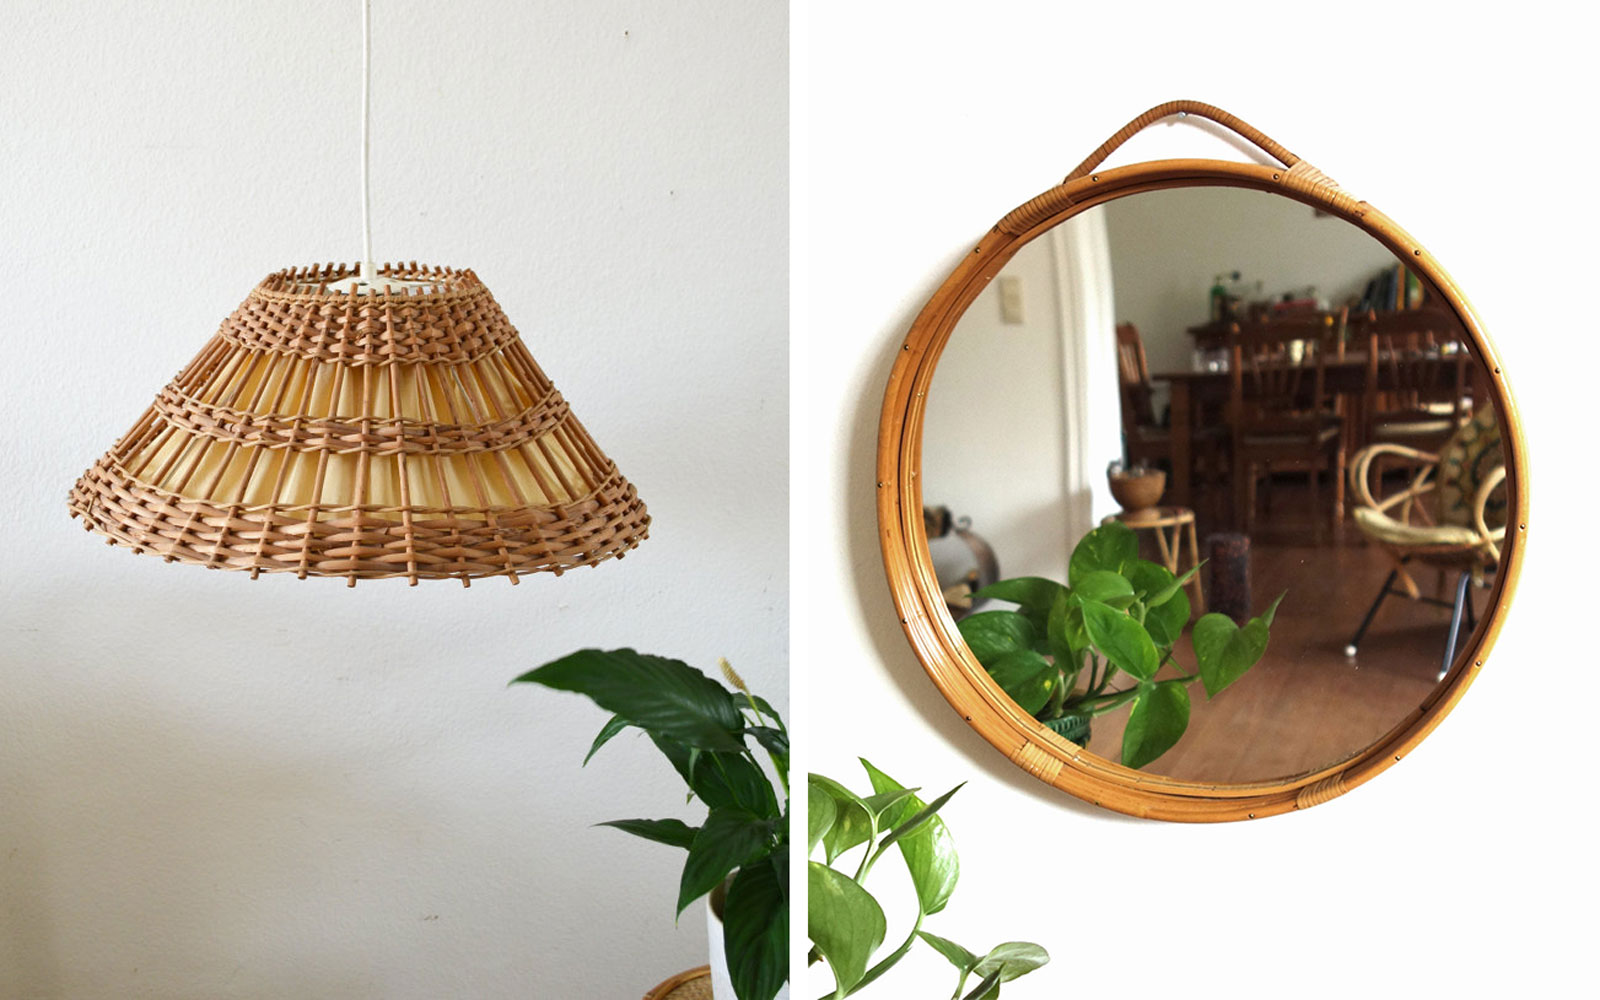 Germany: Vintage Rattan